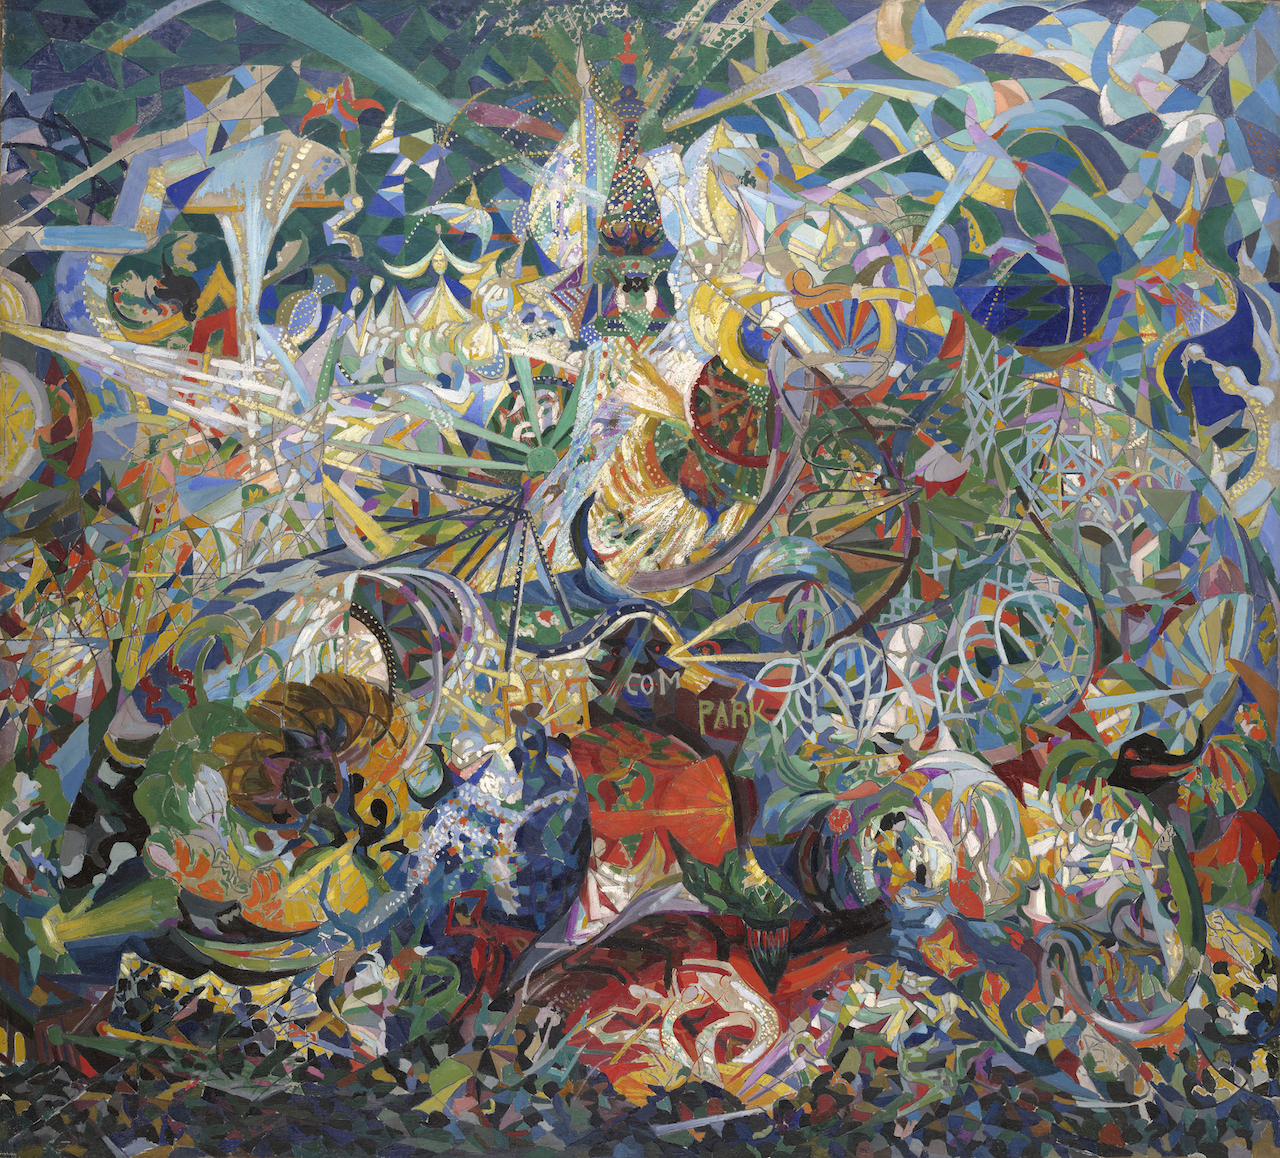 """Joseph Stella, """"Battle of Lights, Coney Island, Mardi Gras"""" (1913-14), oil on canvas, 77 x 84 3/4 in. (Yale University Art Gallery, New Haven, Connecticut; Gift of Collection Société Anonyme)"""